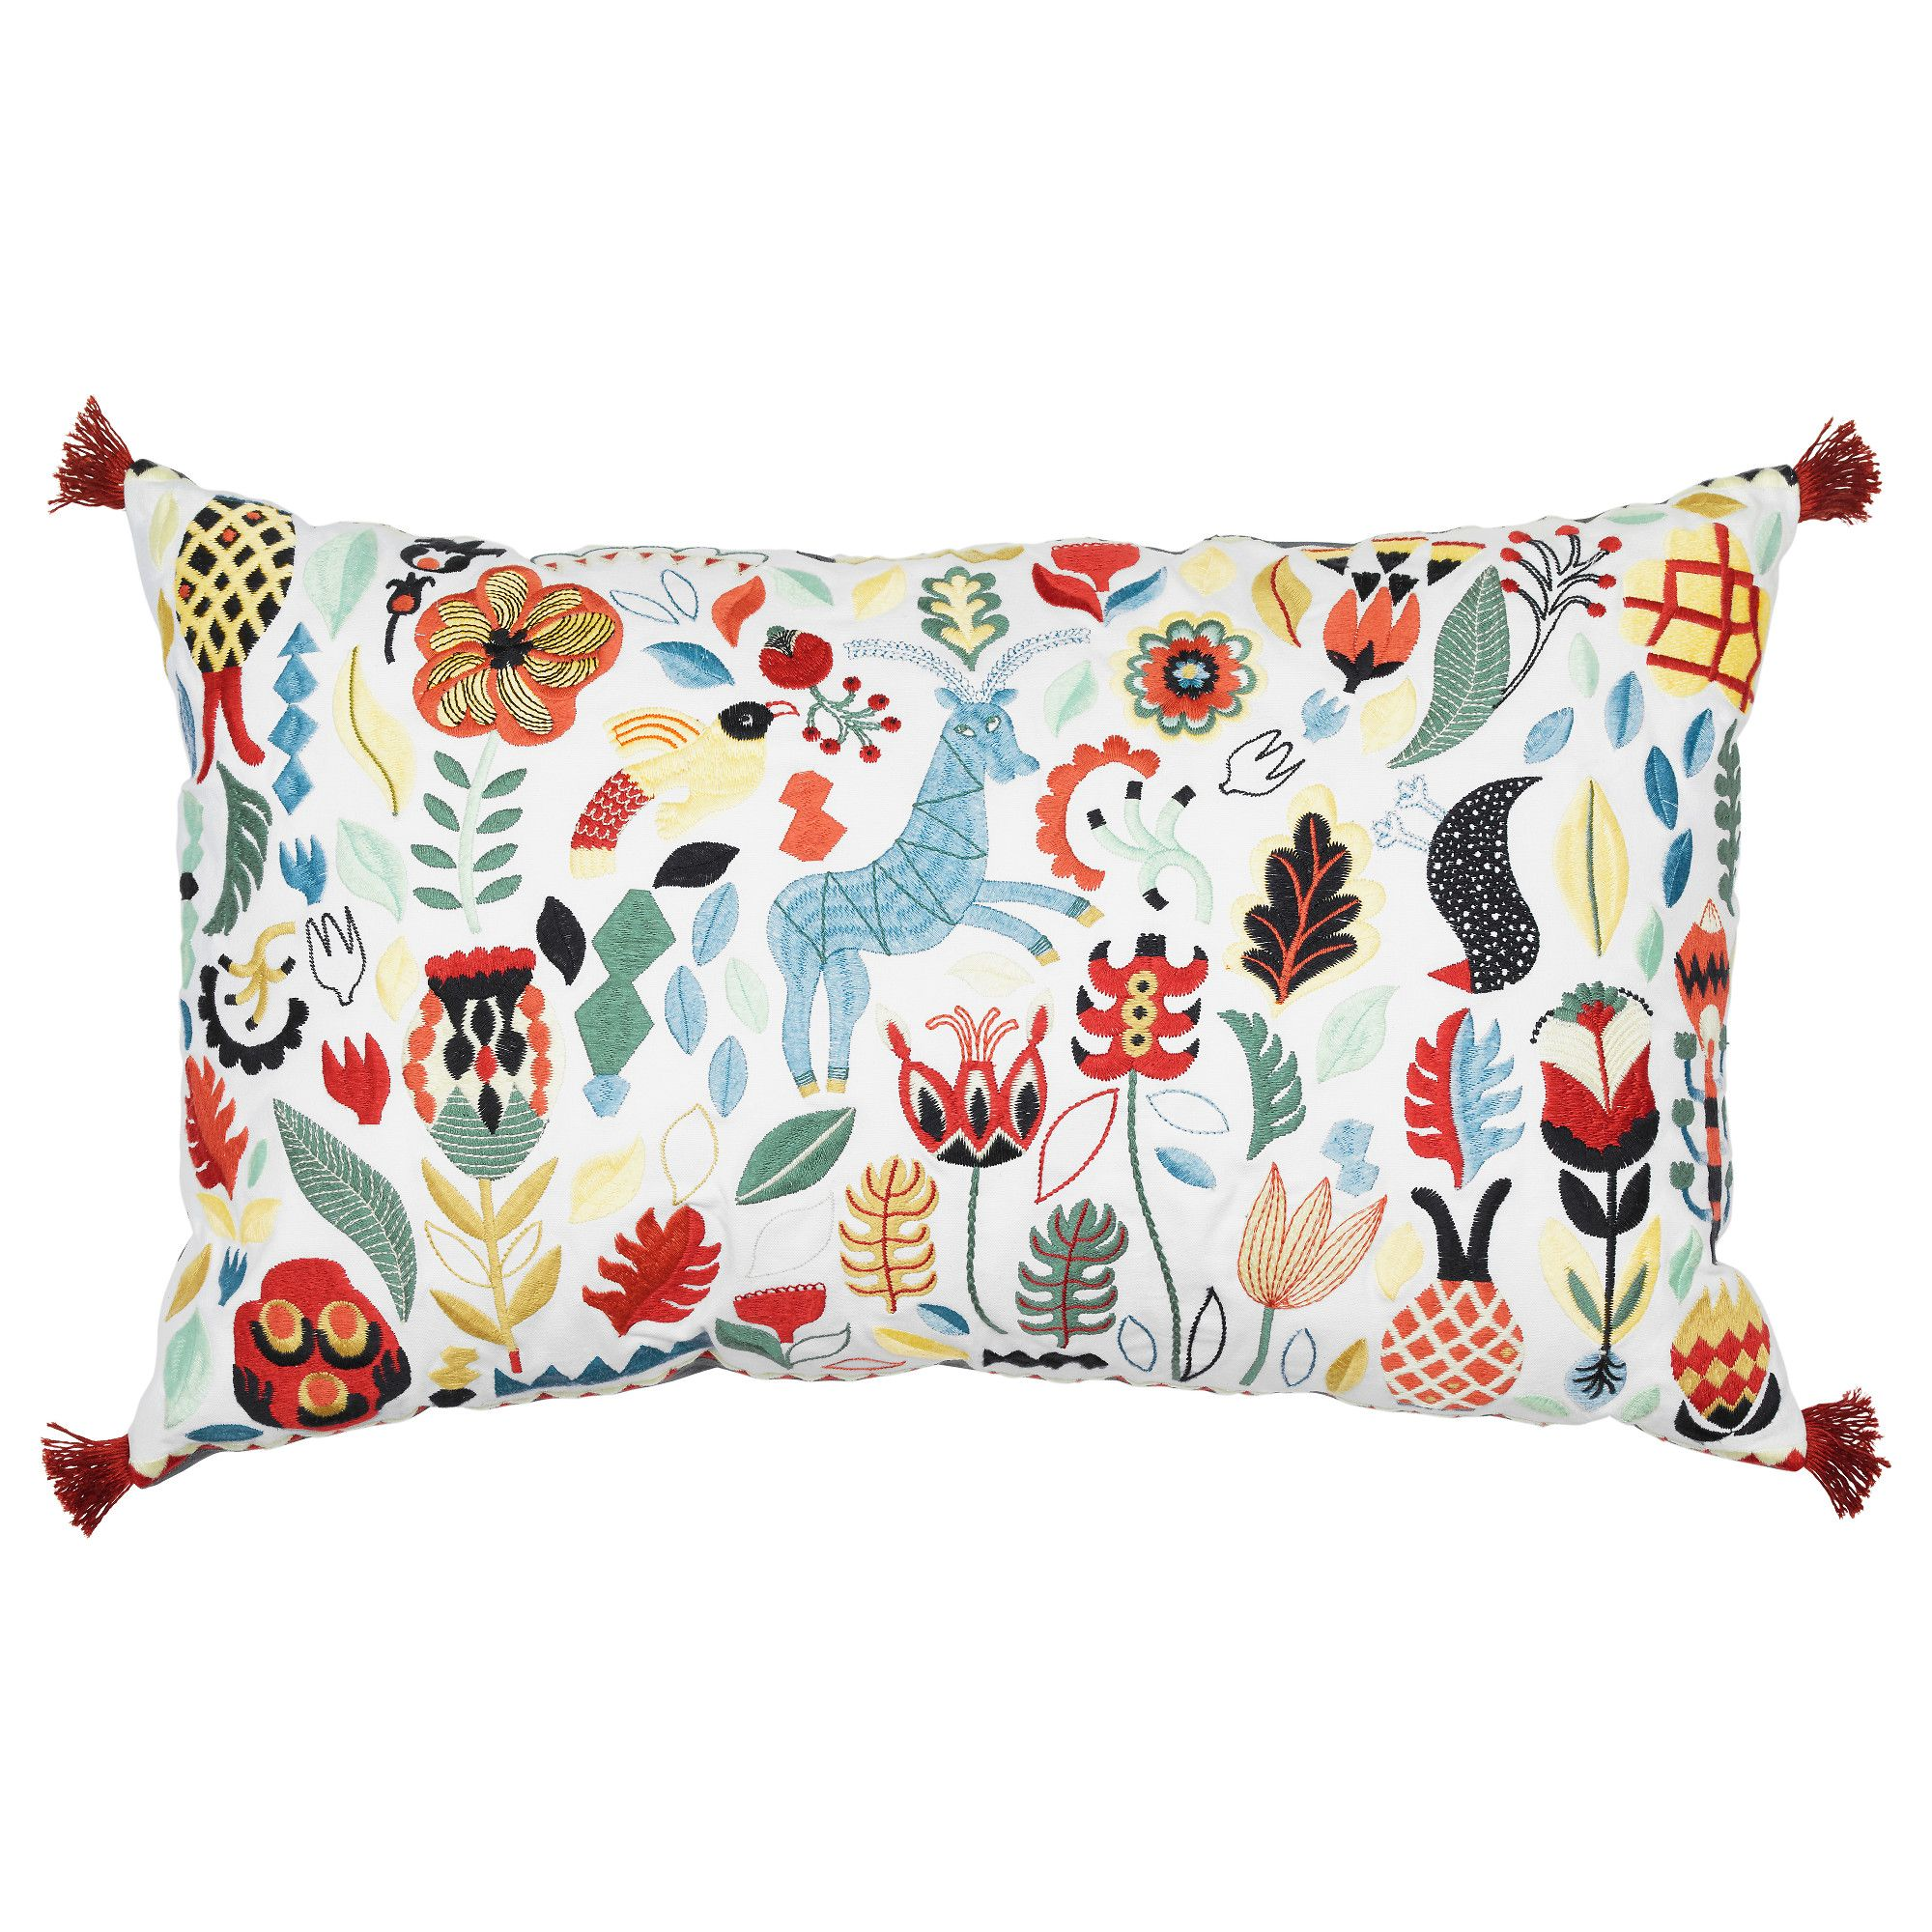 RÖDARV Cushion, multicolor | Luster, Living room ideas and Living rooms